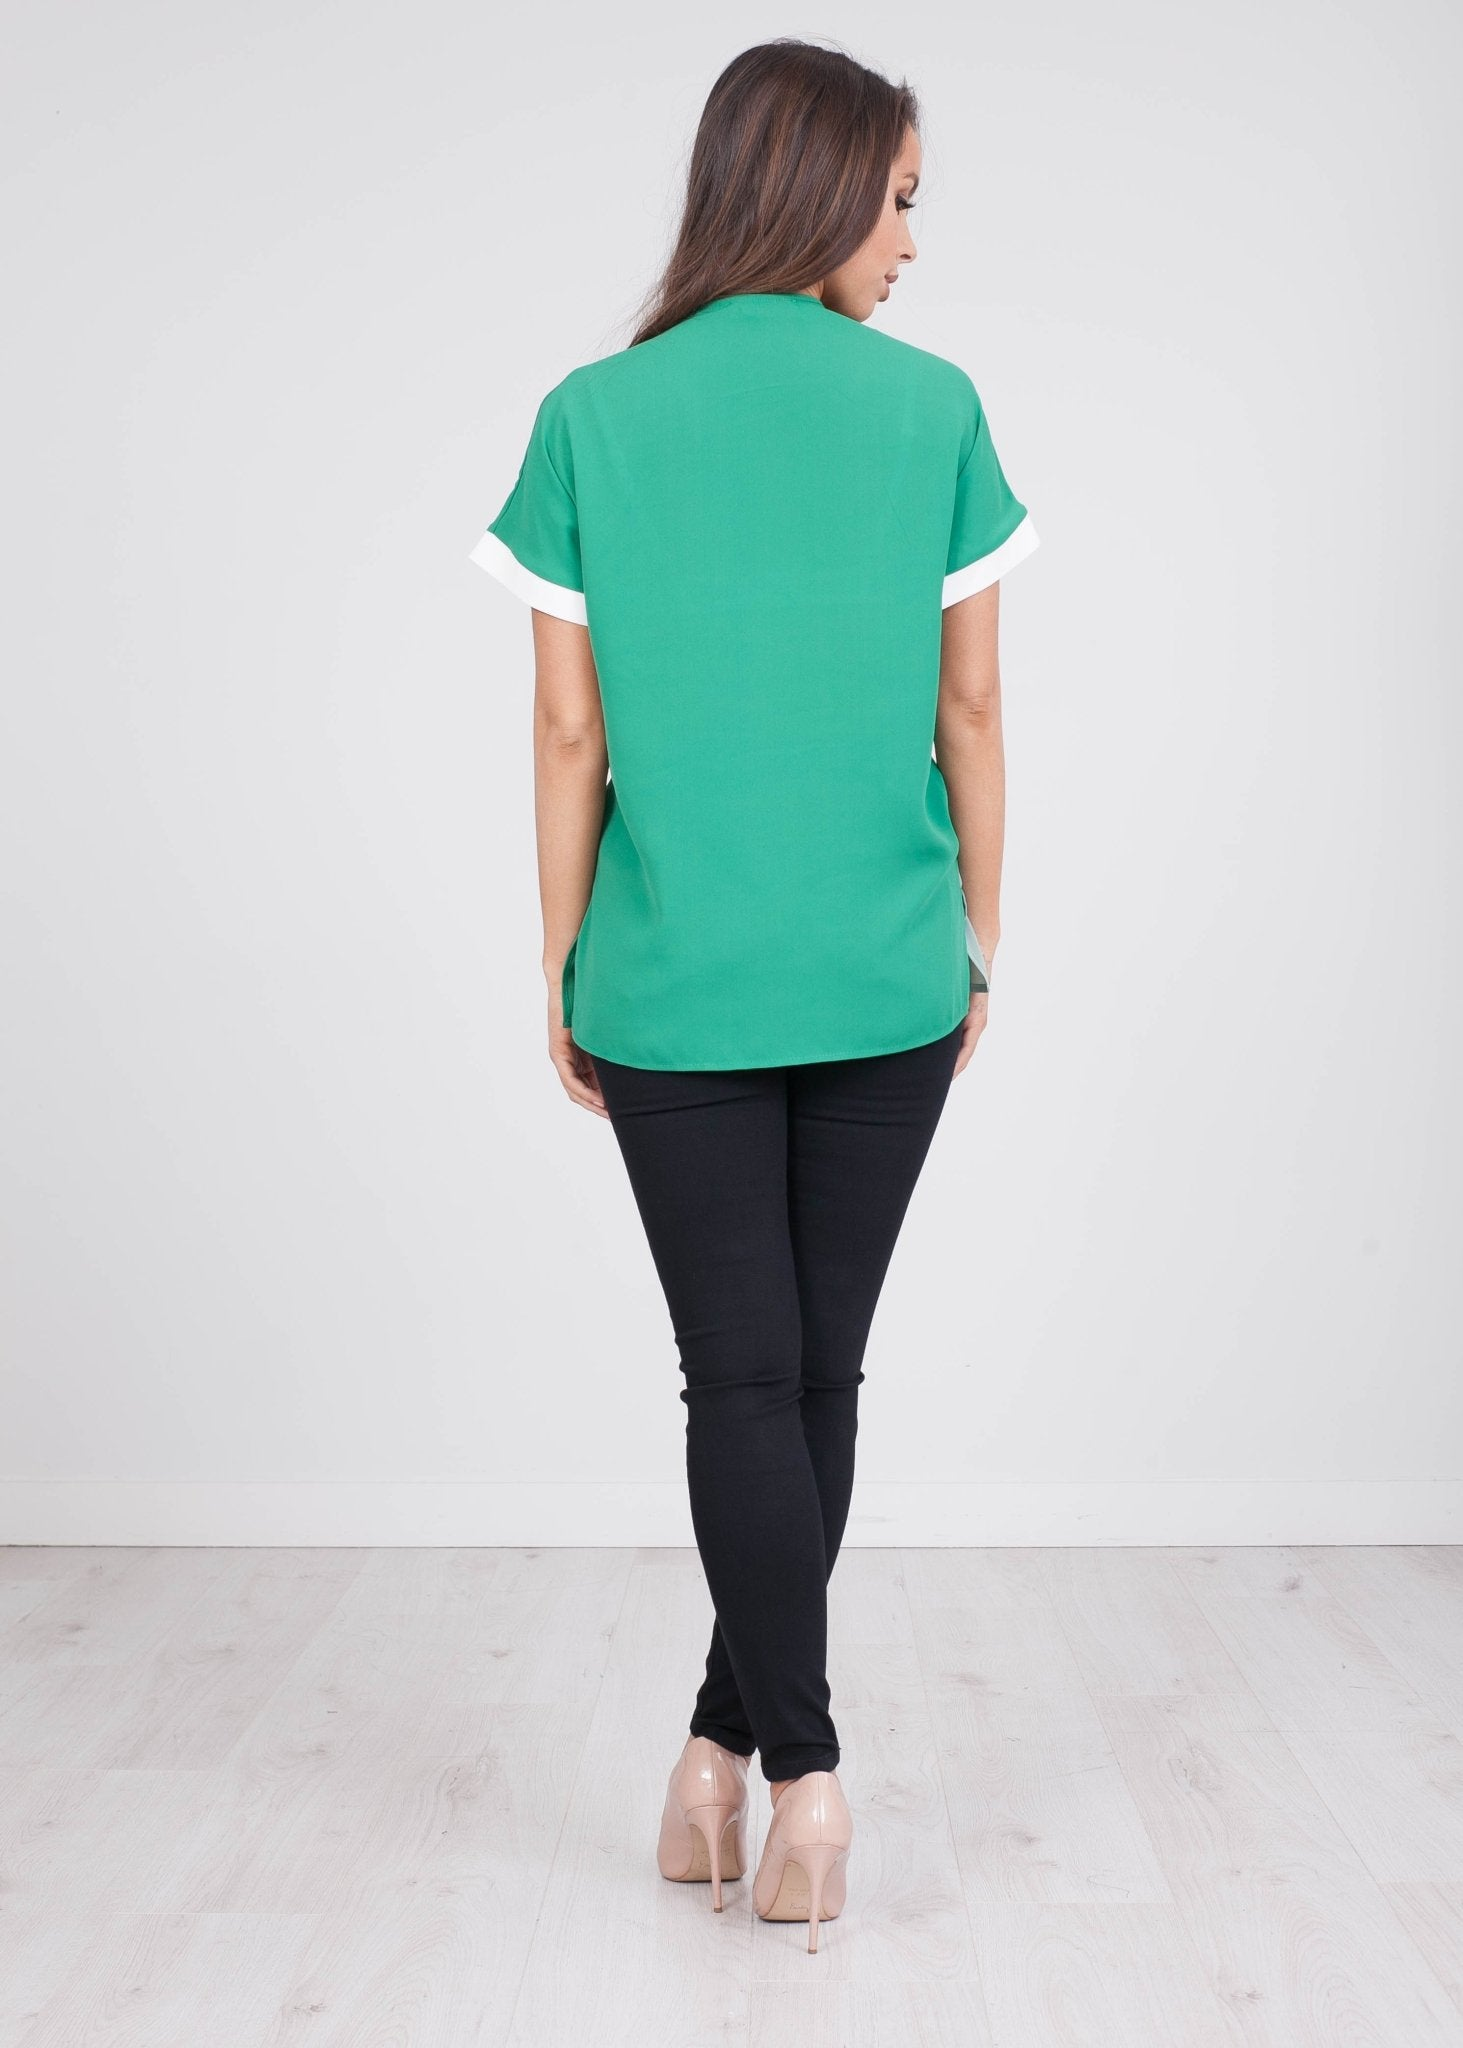 Rita Green Contrasting Top - The Walk in Wardrobe